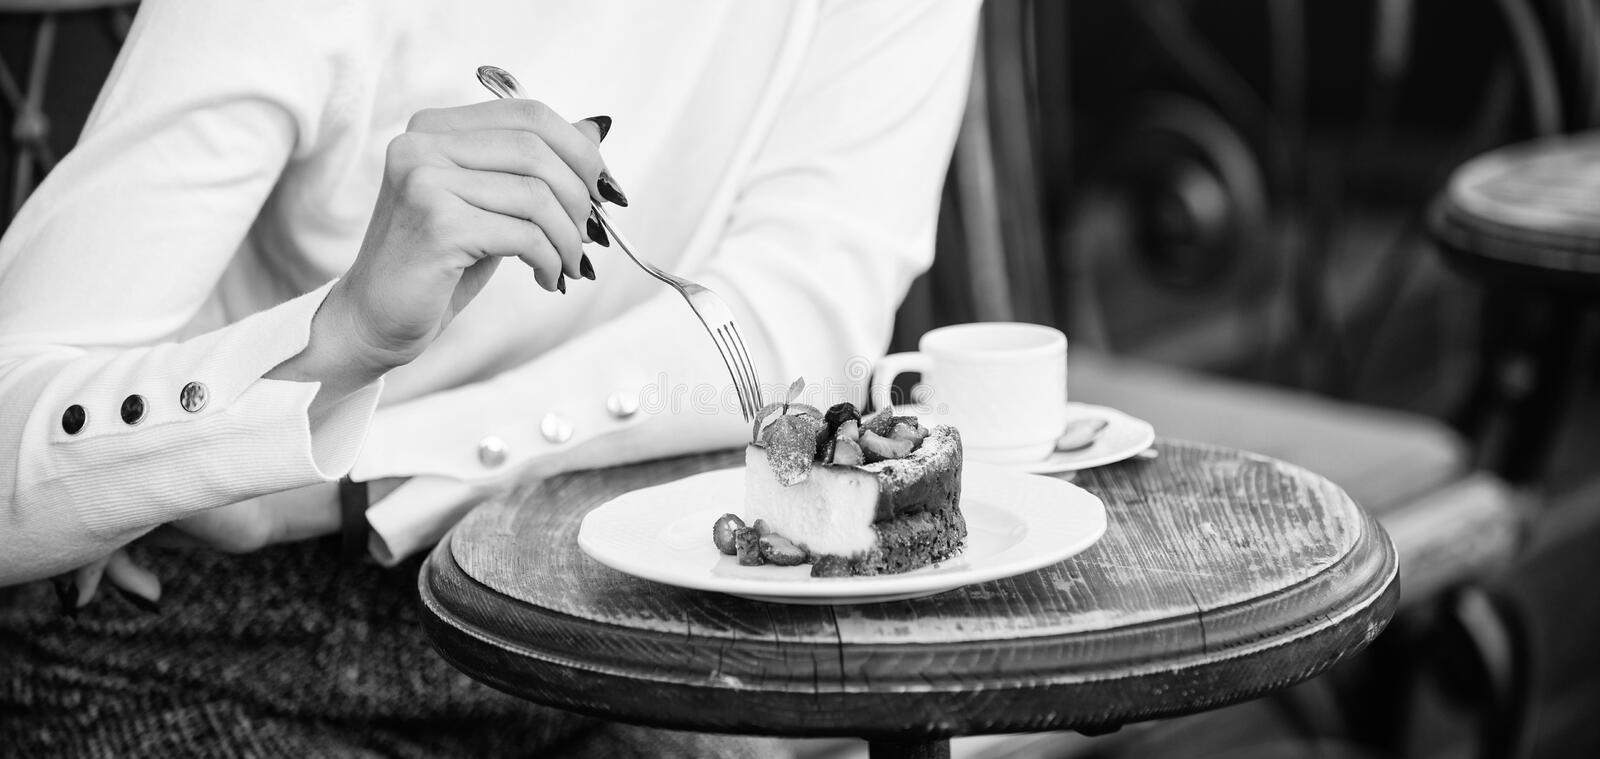 Cake slice on white plate. Cake with cream delicious dessert. Appetite concept. Dessert cake cup of coffee and female royalty free stock image